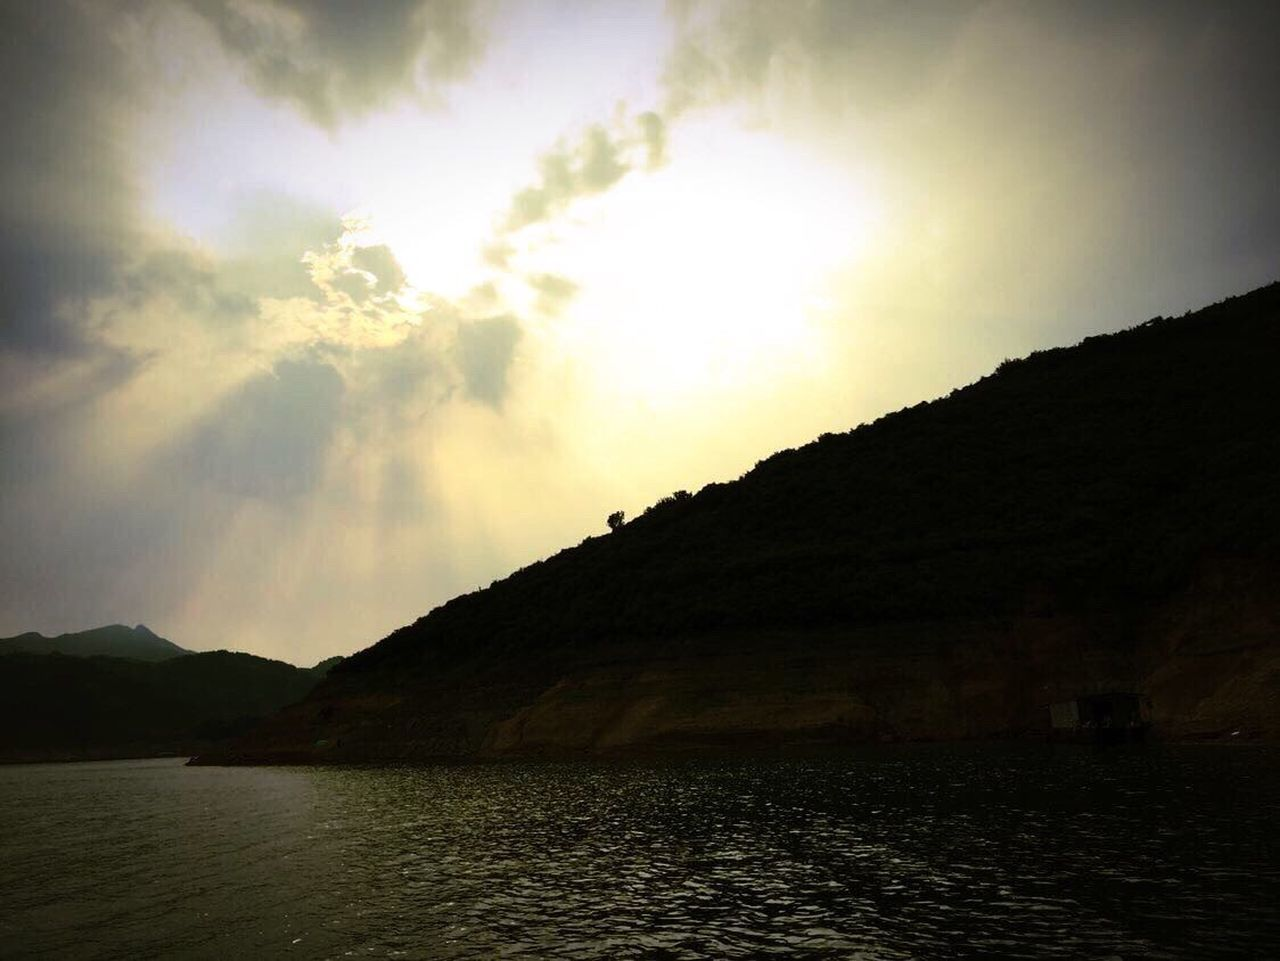 nature, tranquility, sky, scenics, beauty in nature, no people, mountain, tranquil scene, outdoors, water, cloud - sky, sea, day